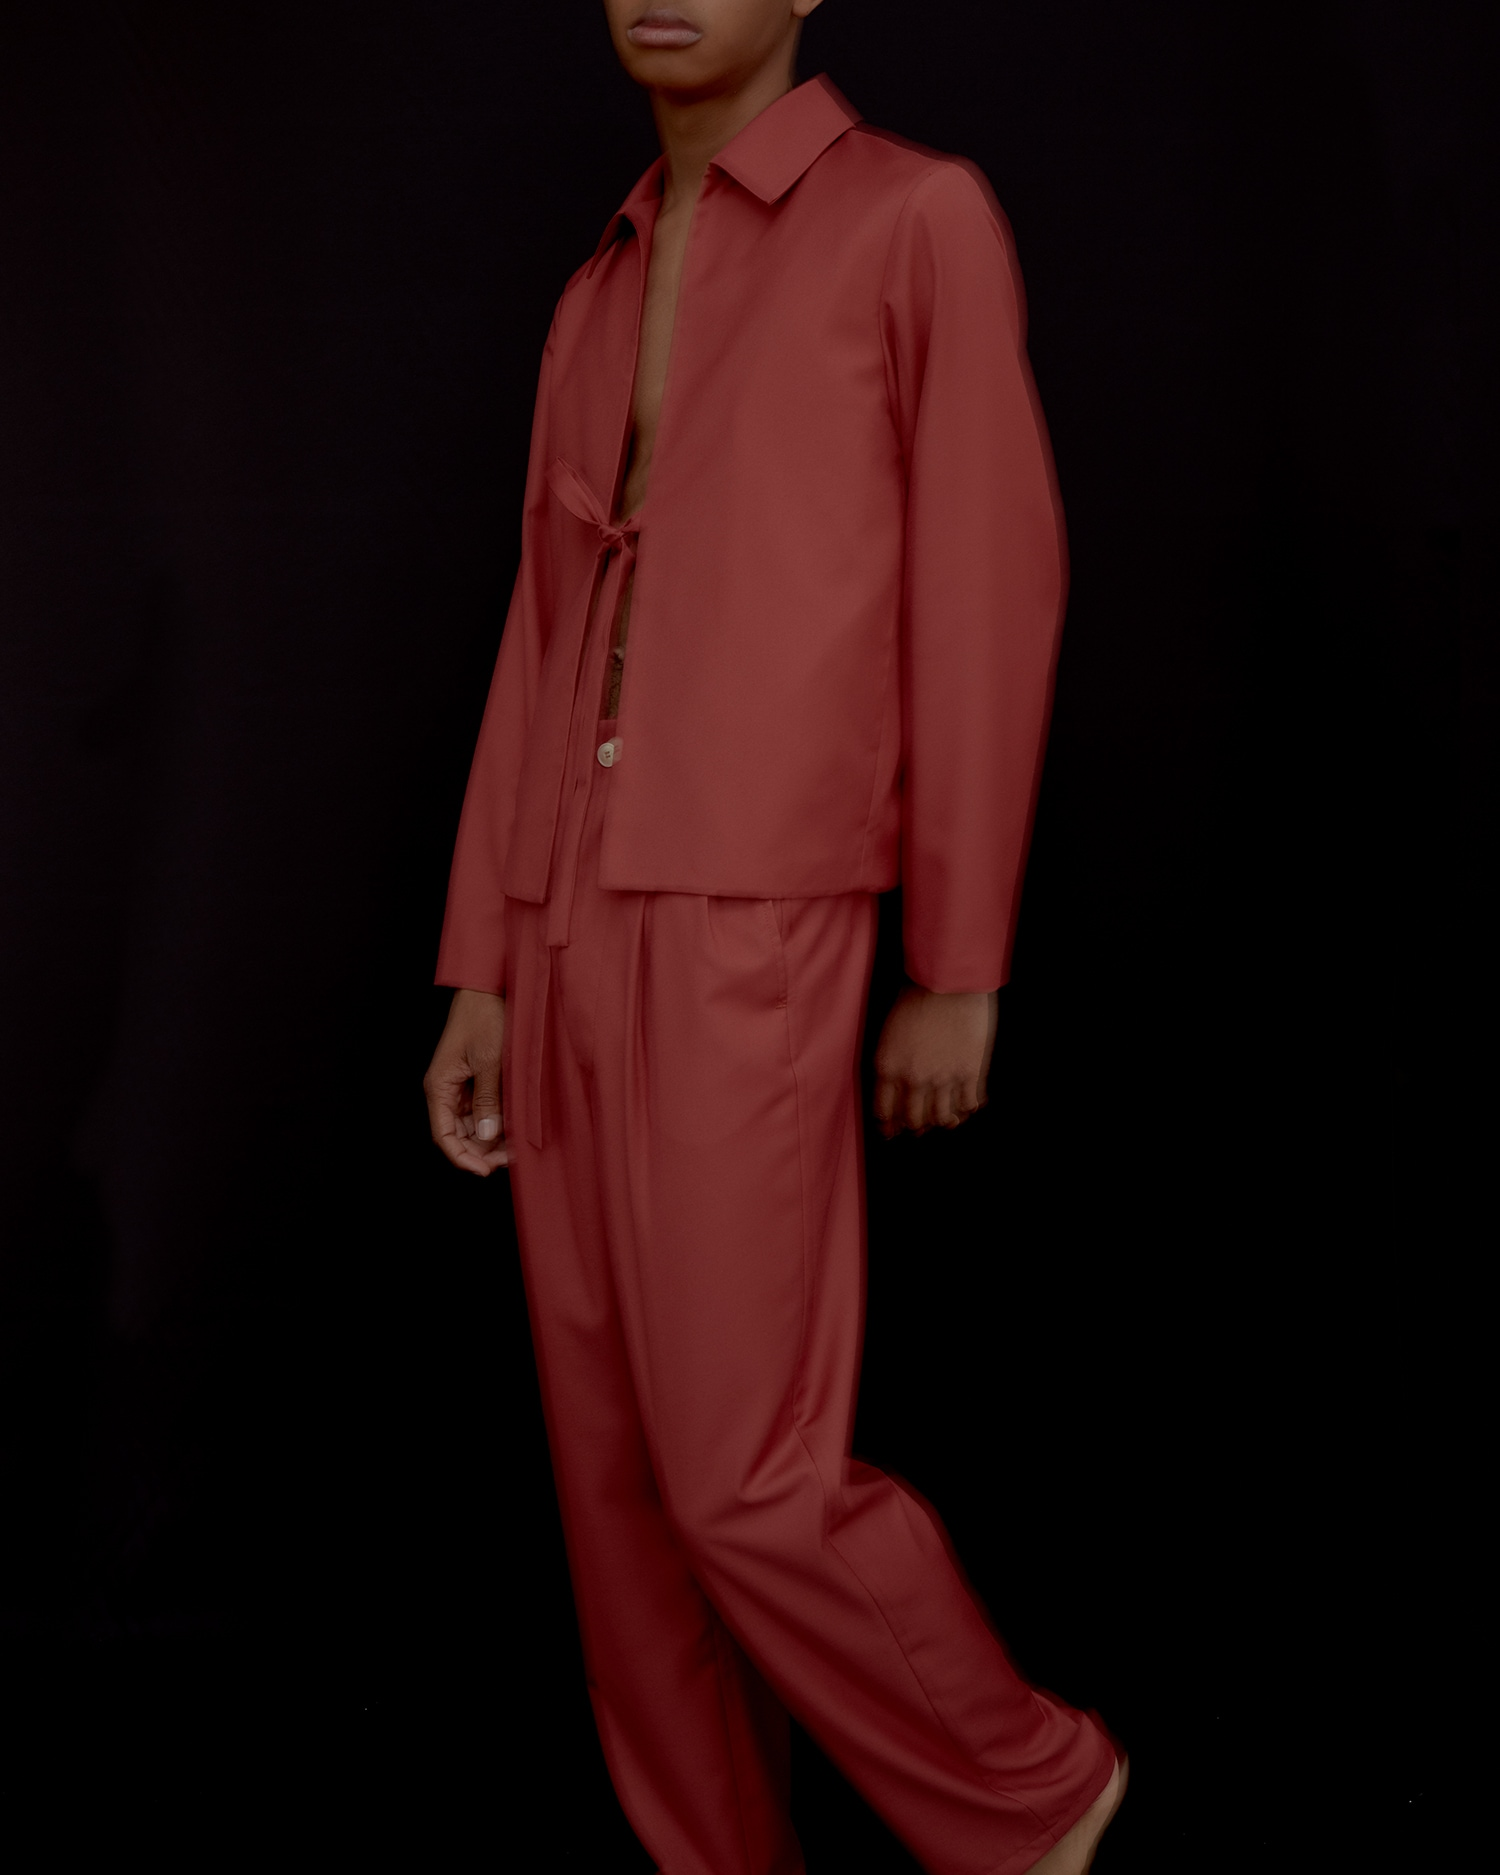 Designer Suit. Casual Blazer and Matching Pleated Trouser In Red.